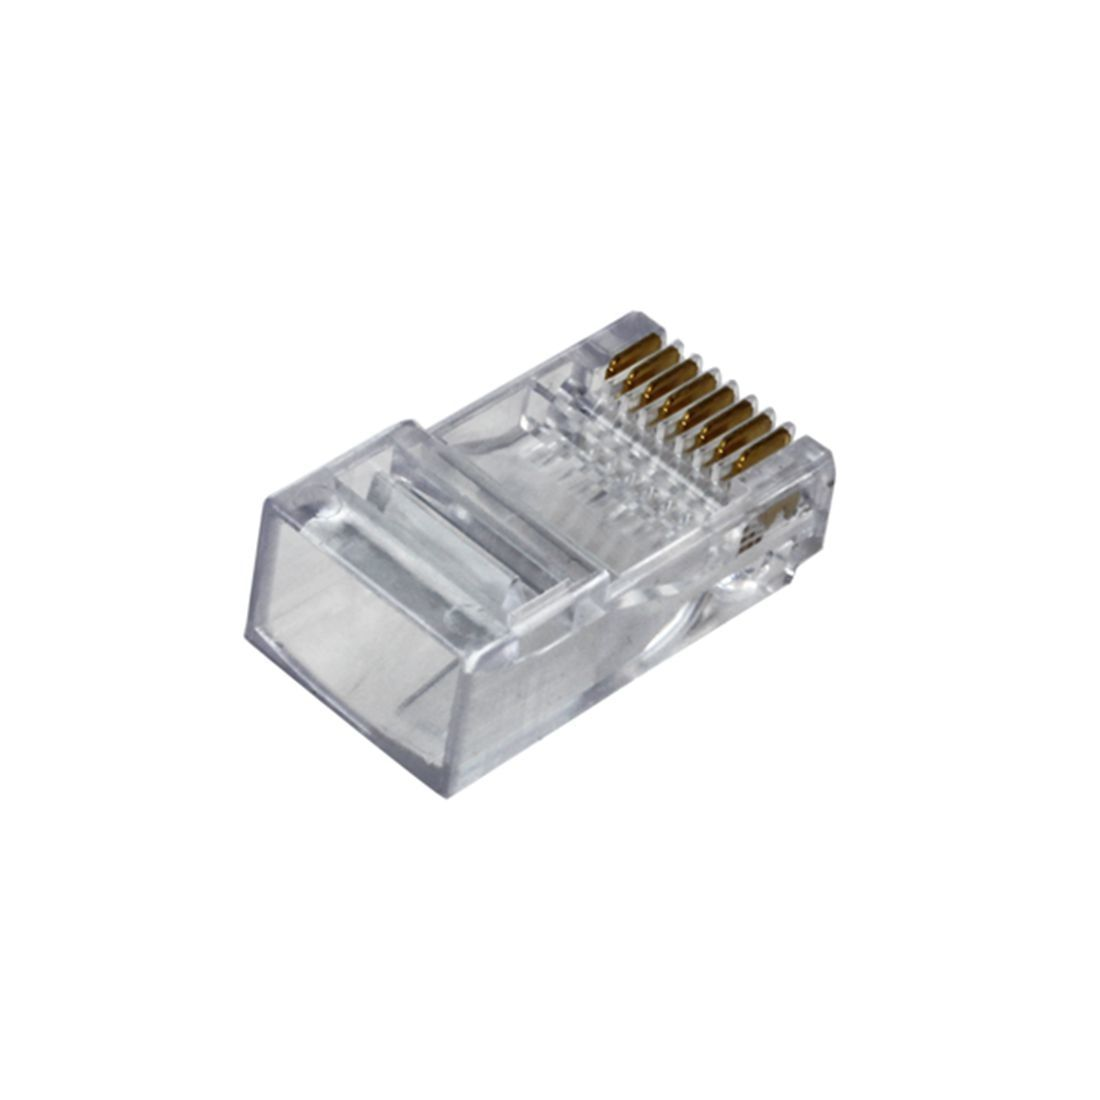 IDEAL 85-346 RJ-45 8-POS 8-Contact Plugs Pkg of 25